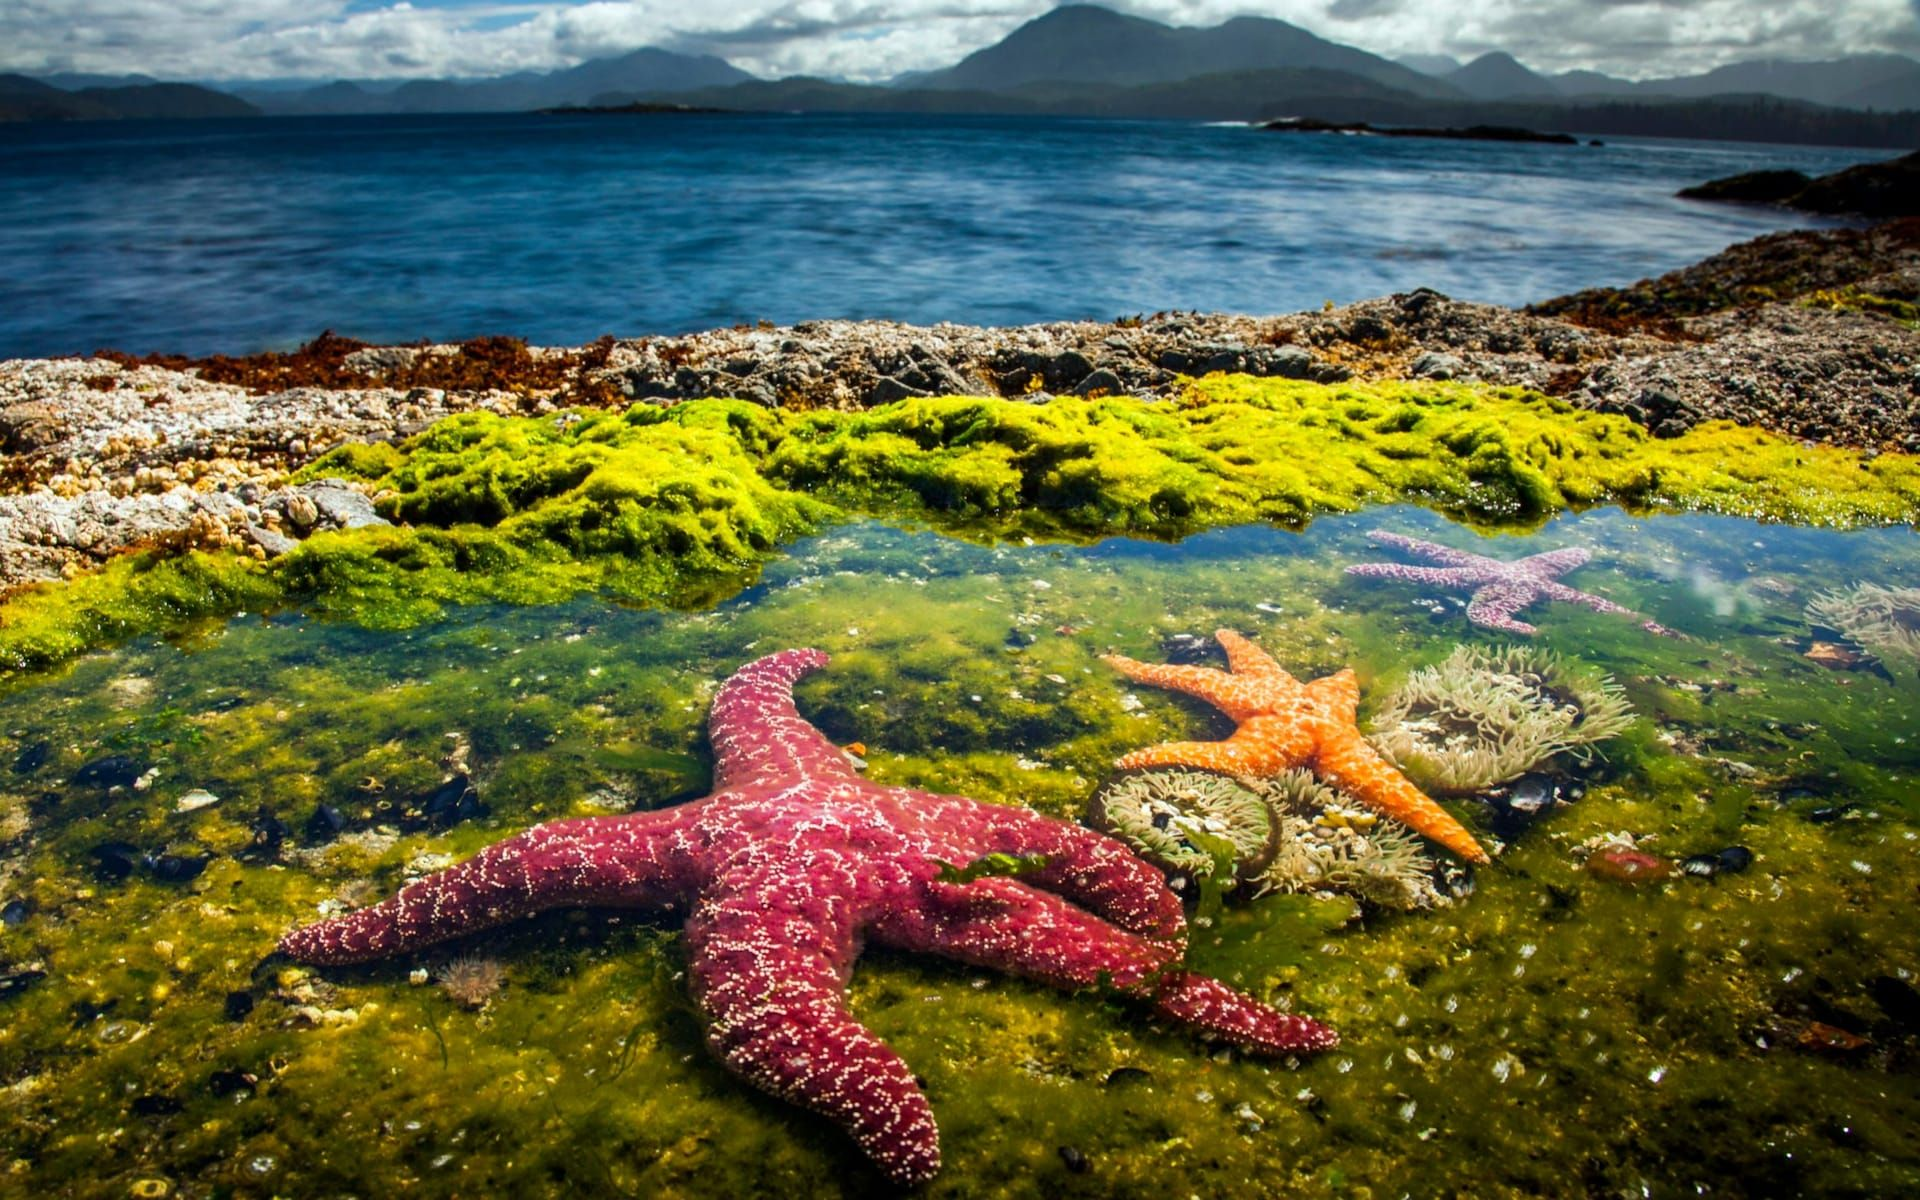 Blue Planet Ii Highlights Of The Spectacular Bbc Natural